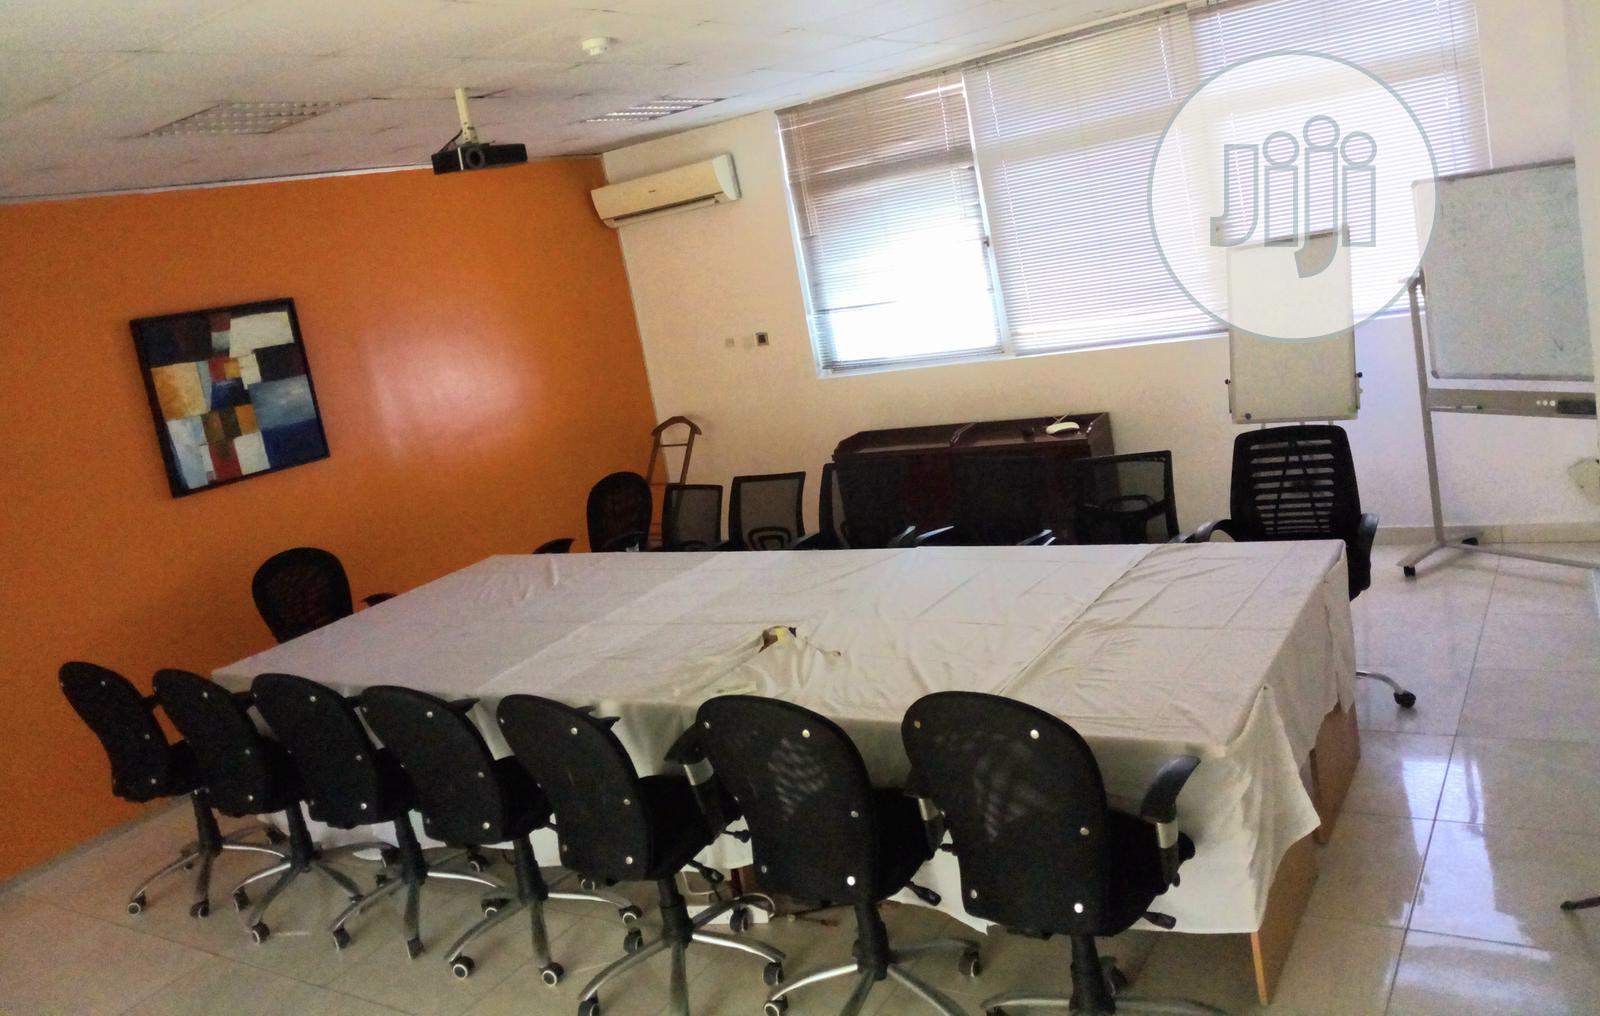 Conference/Meeting/Training Room | Event centres, Venues and Workstations for sale in Victoria Island, Lagos State, Nigeria